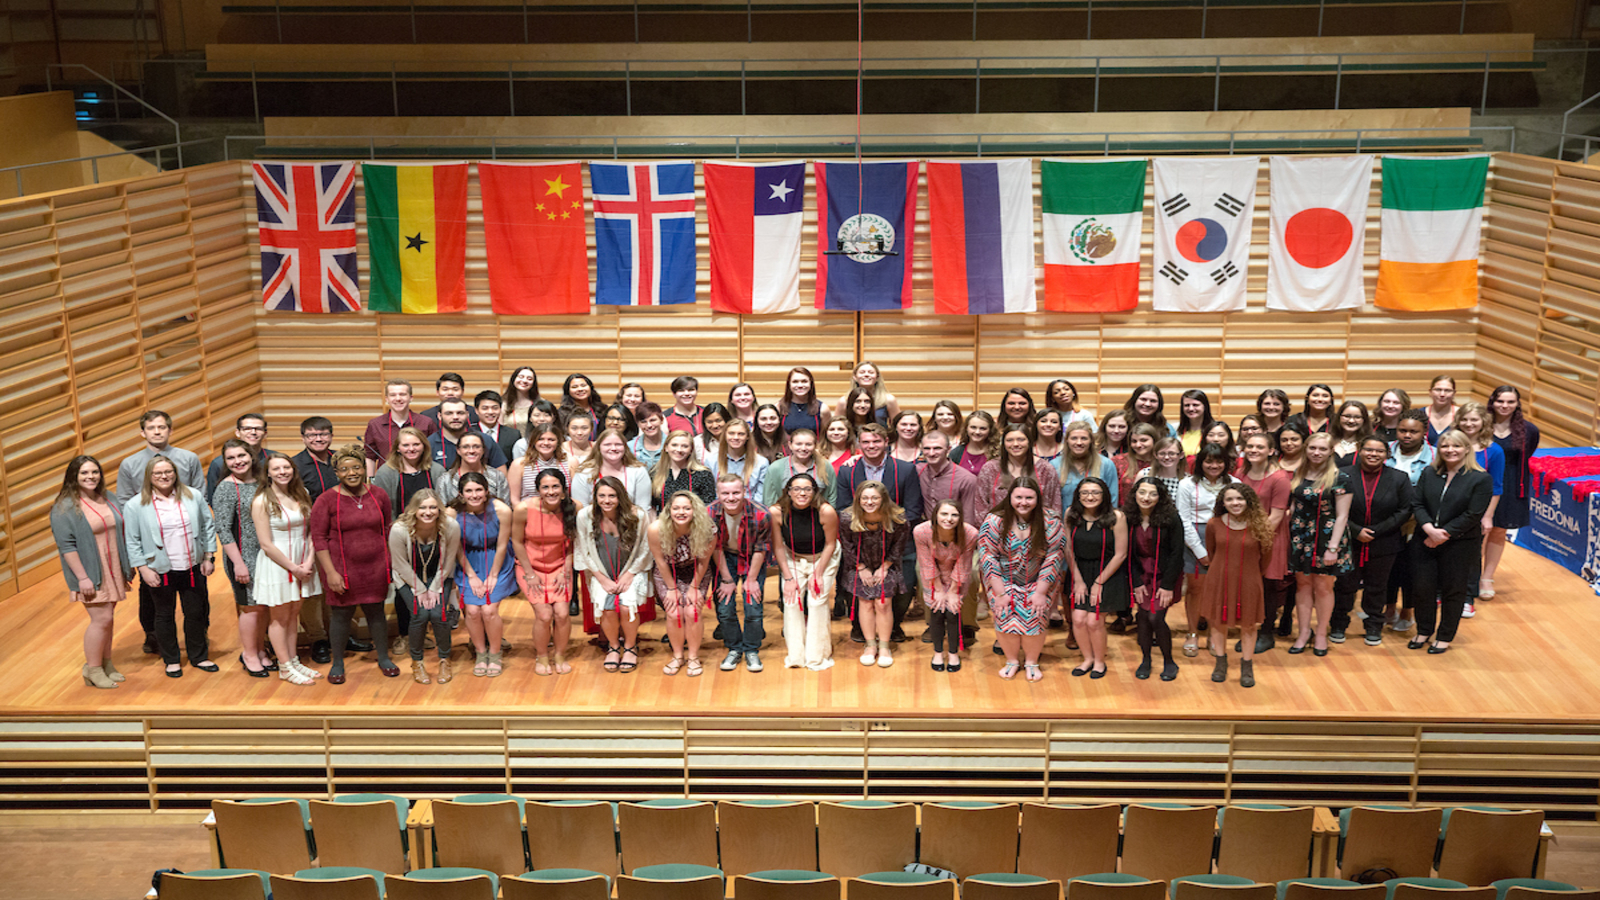 Group photo from International Student Reception in Rosch Hall